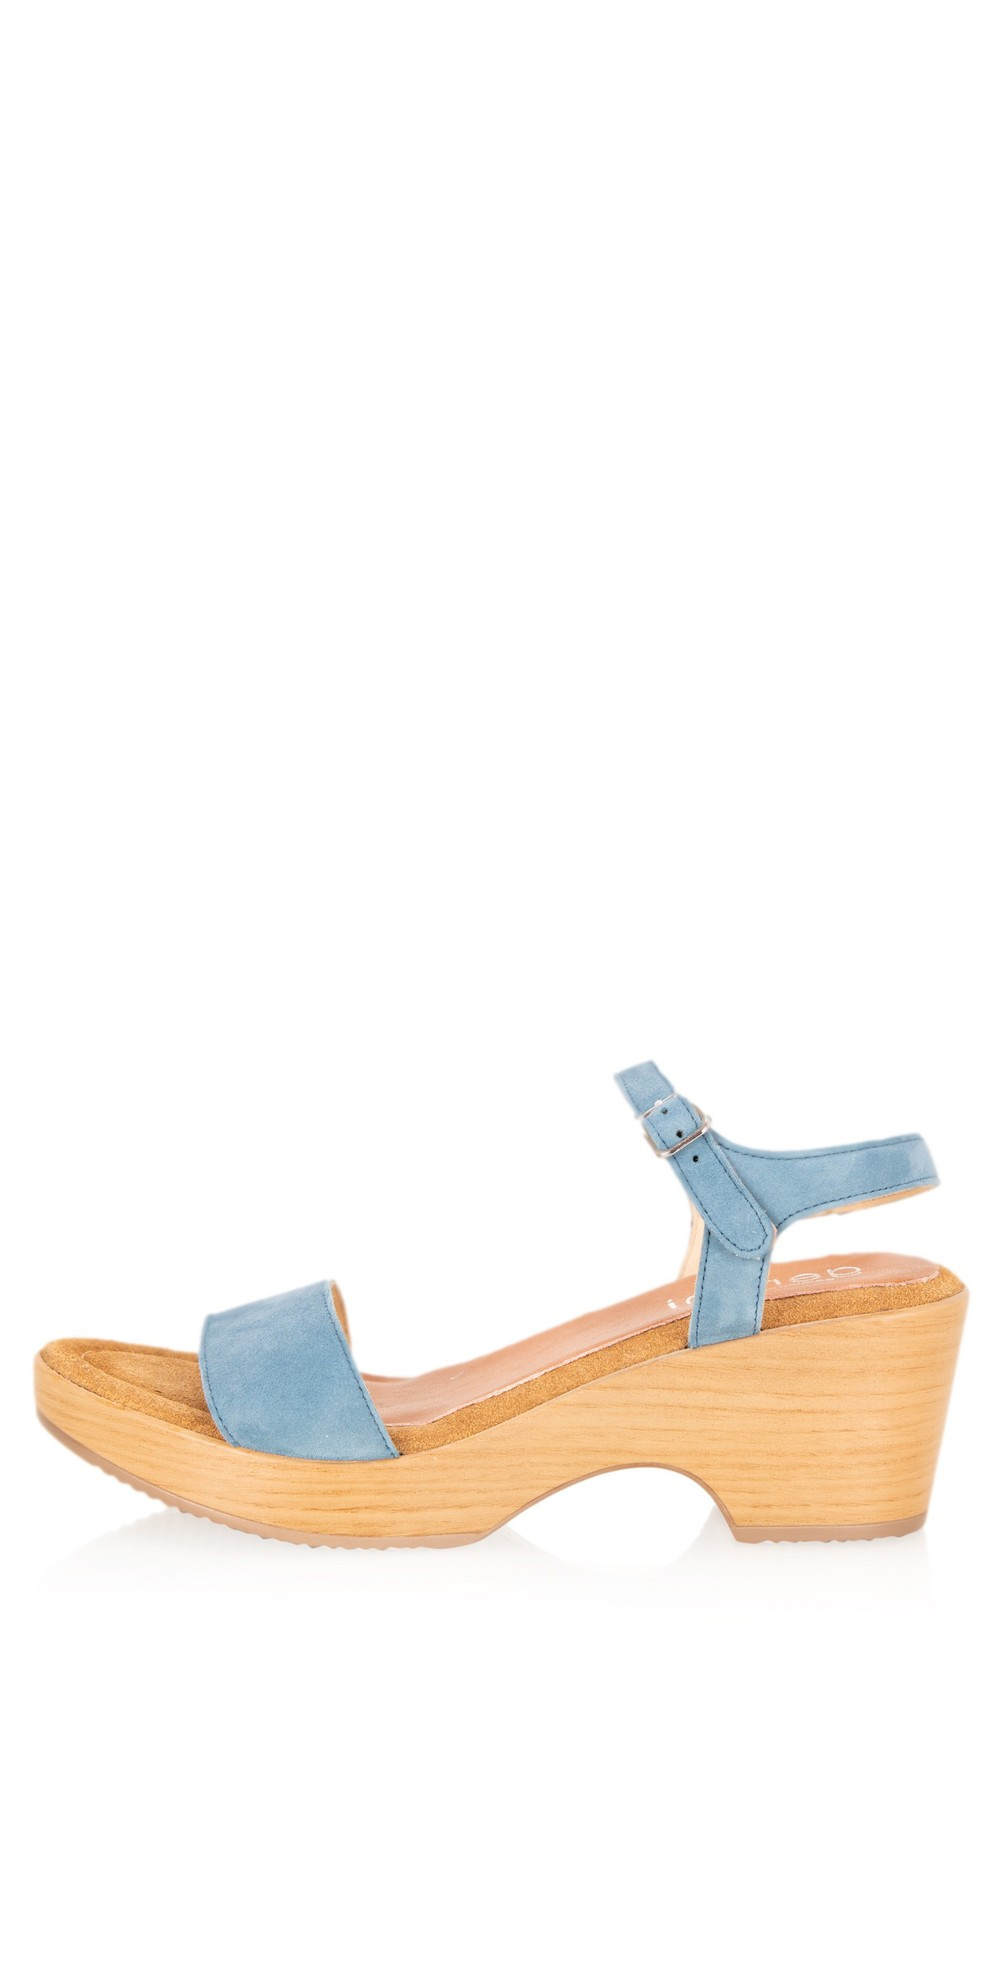 Aneka Icon Jeans Blue Suede Wedge Sandal main image